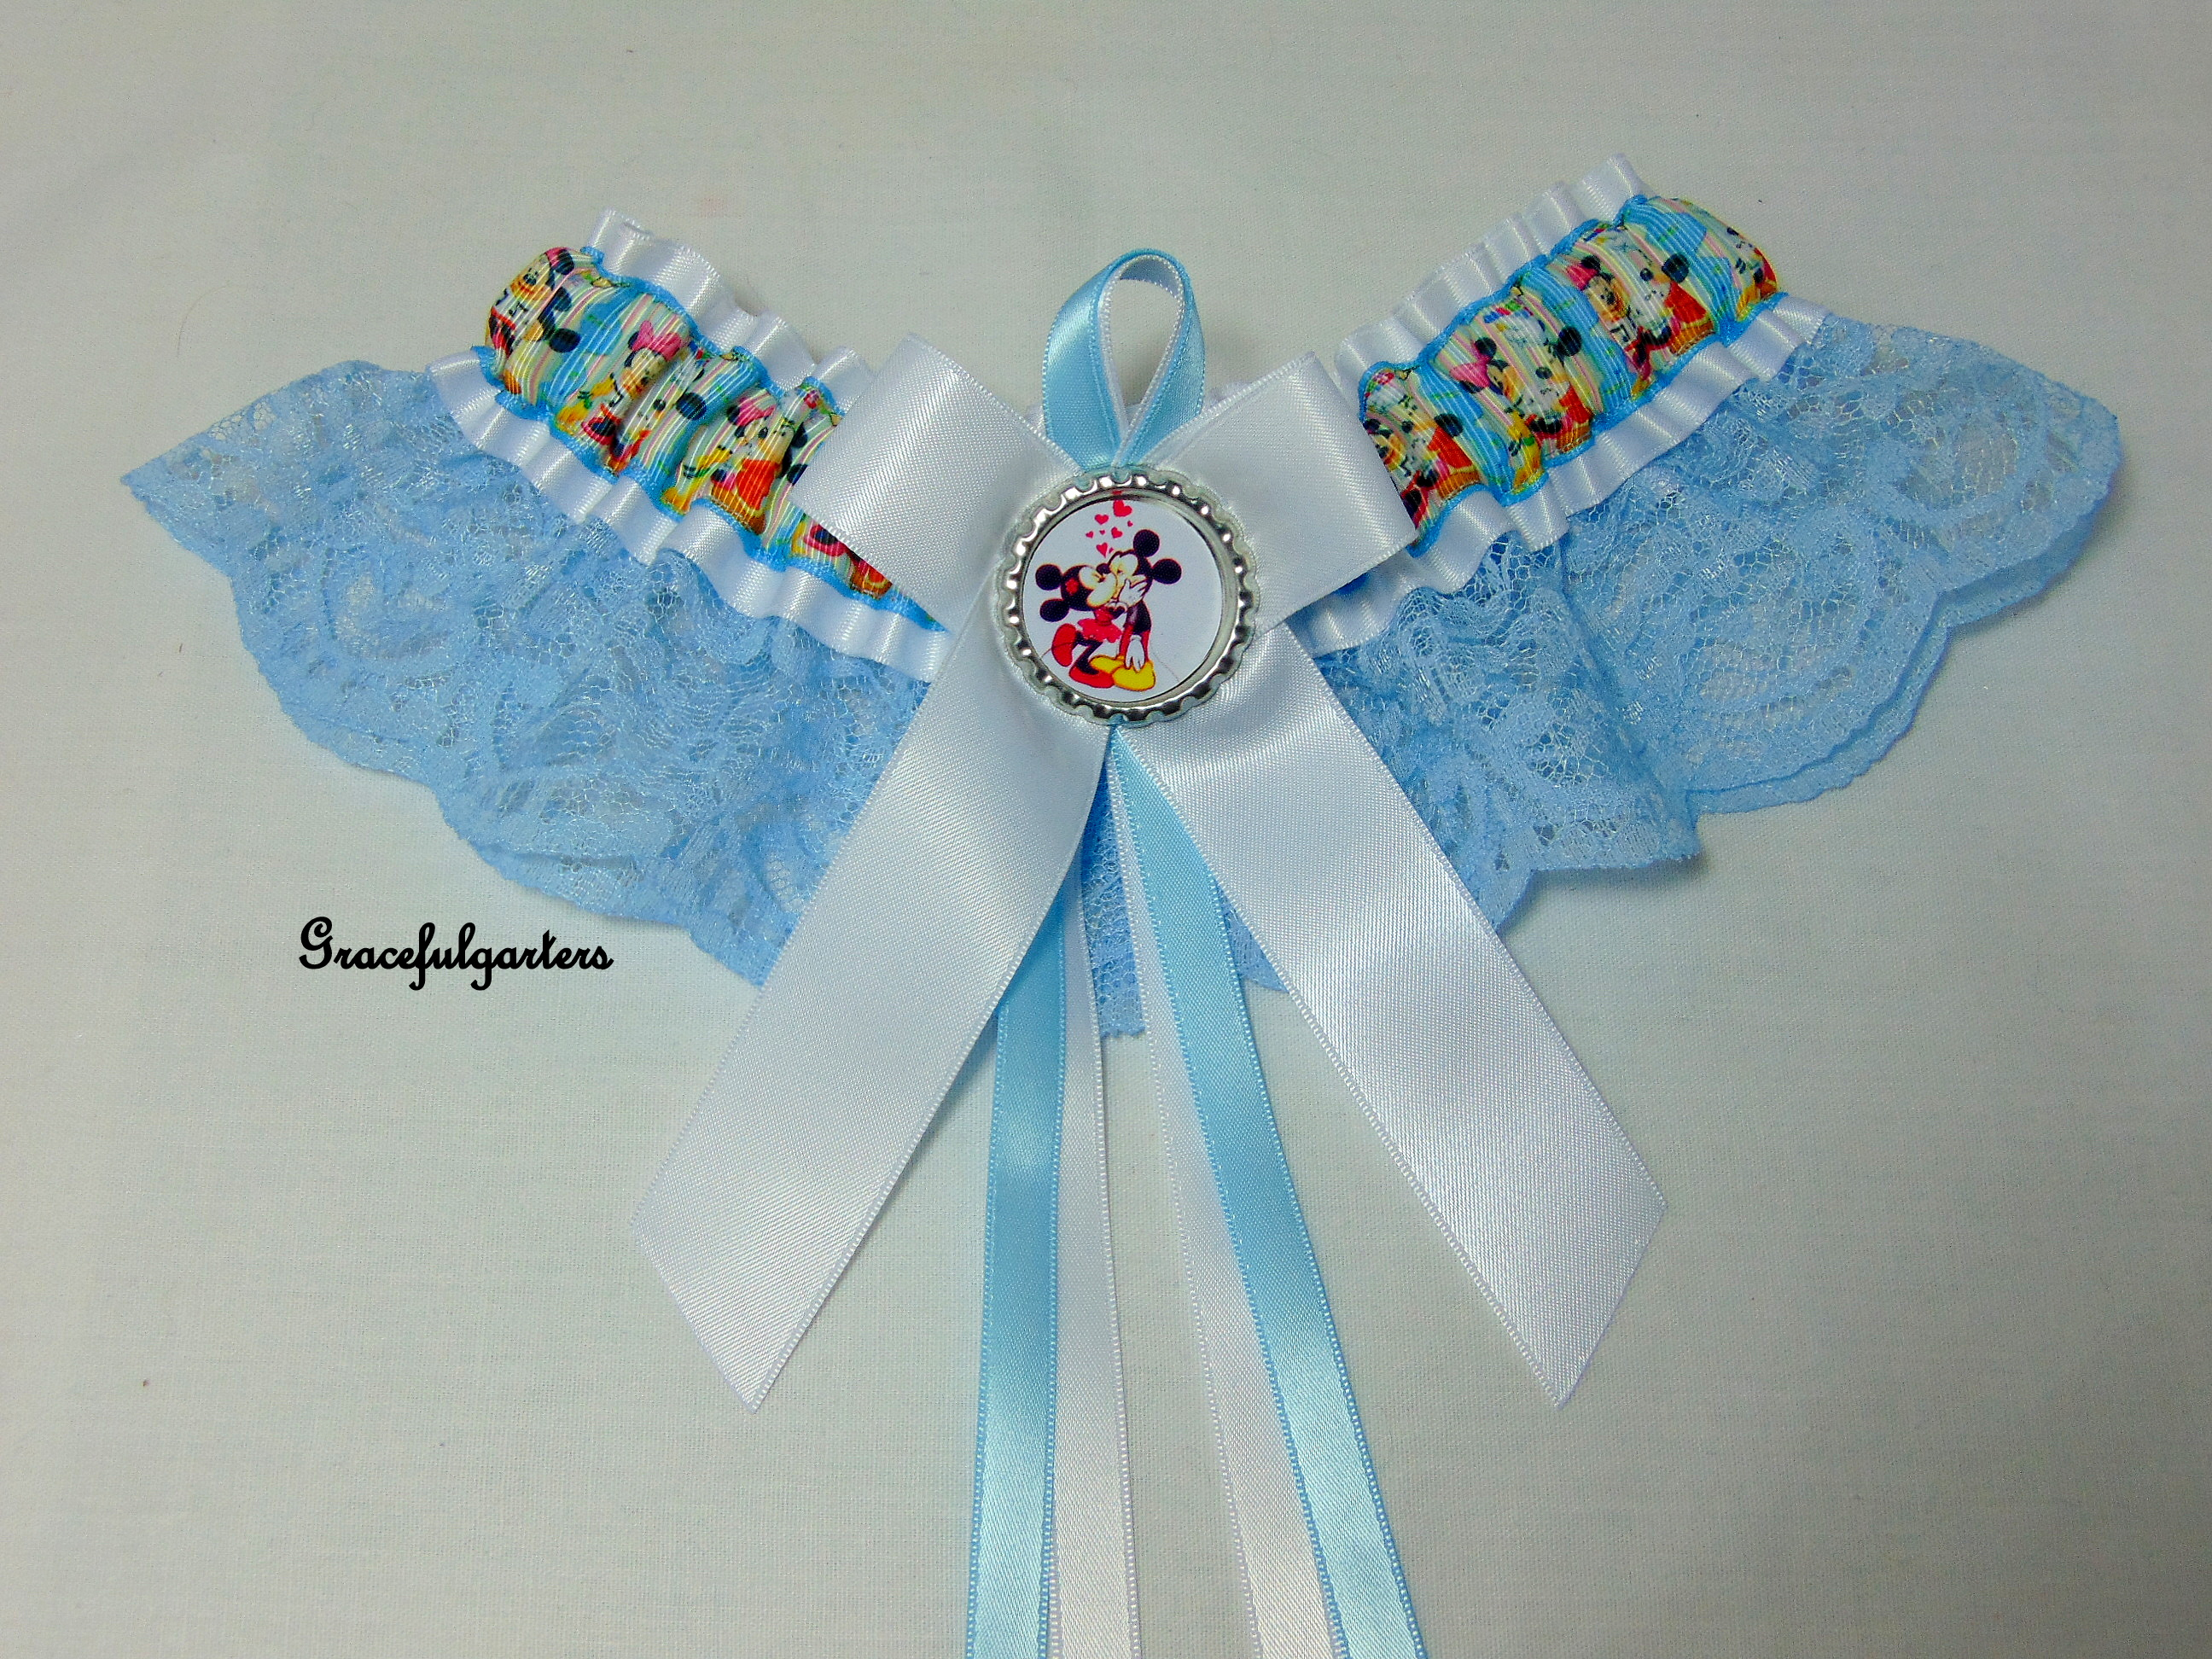 Mickey & Minnie Mouse Disney Lace Bridal Wedding Garter